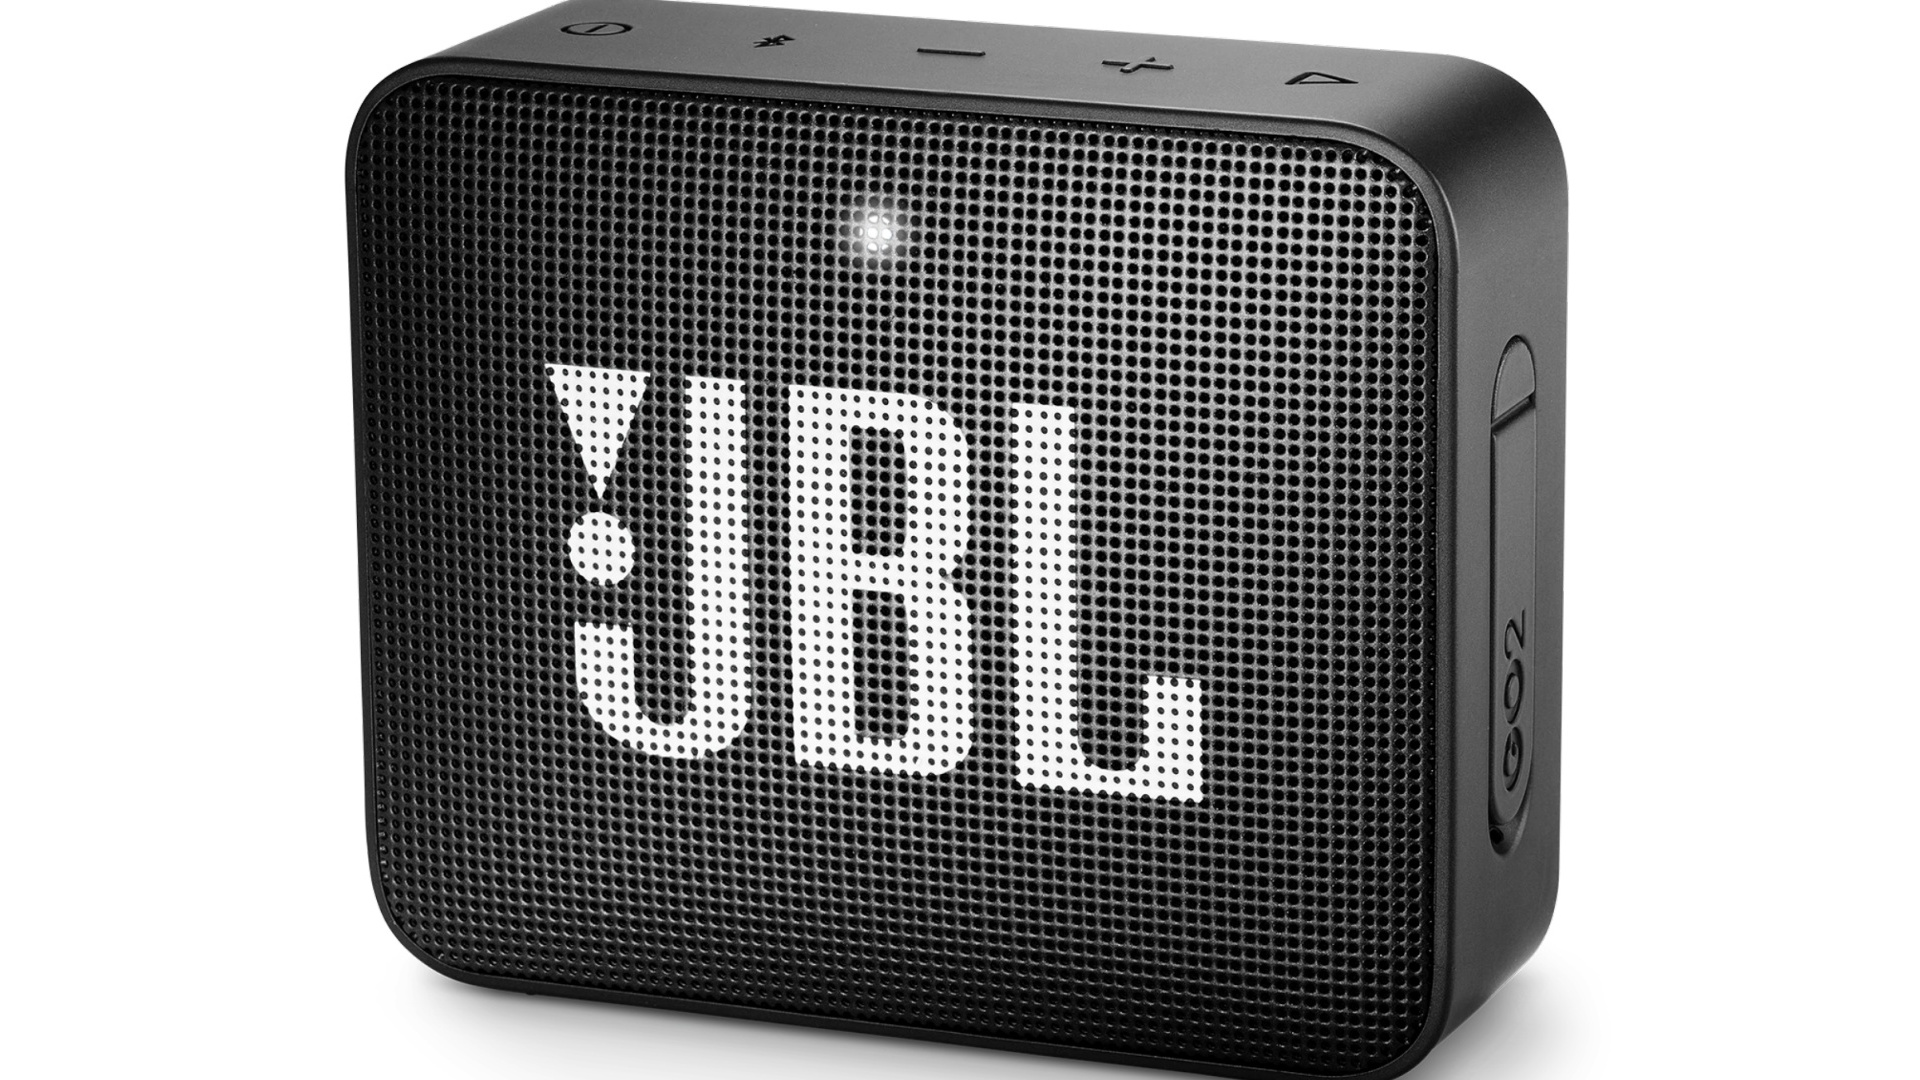 5 of the best portable speakers you can buy right now for under R1 ... 9fe729d3c5667